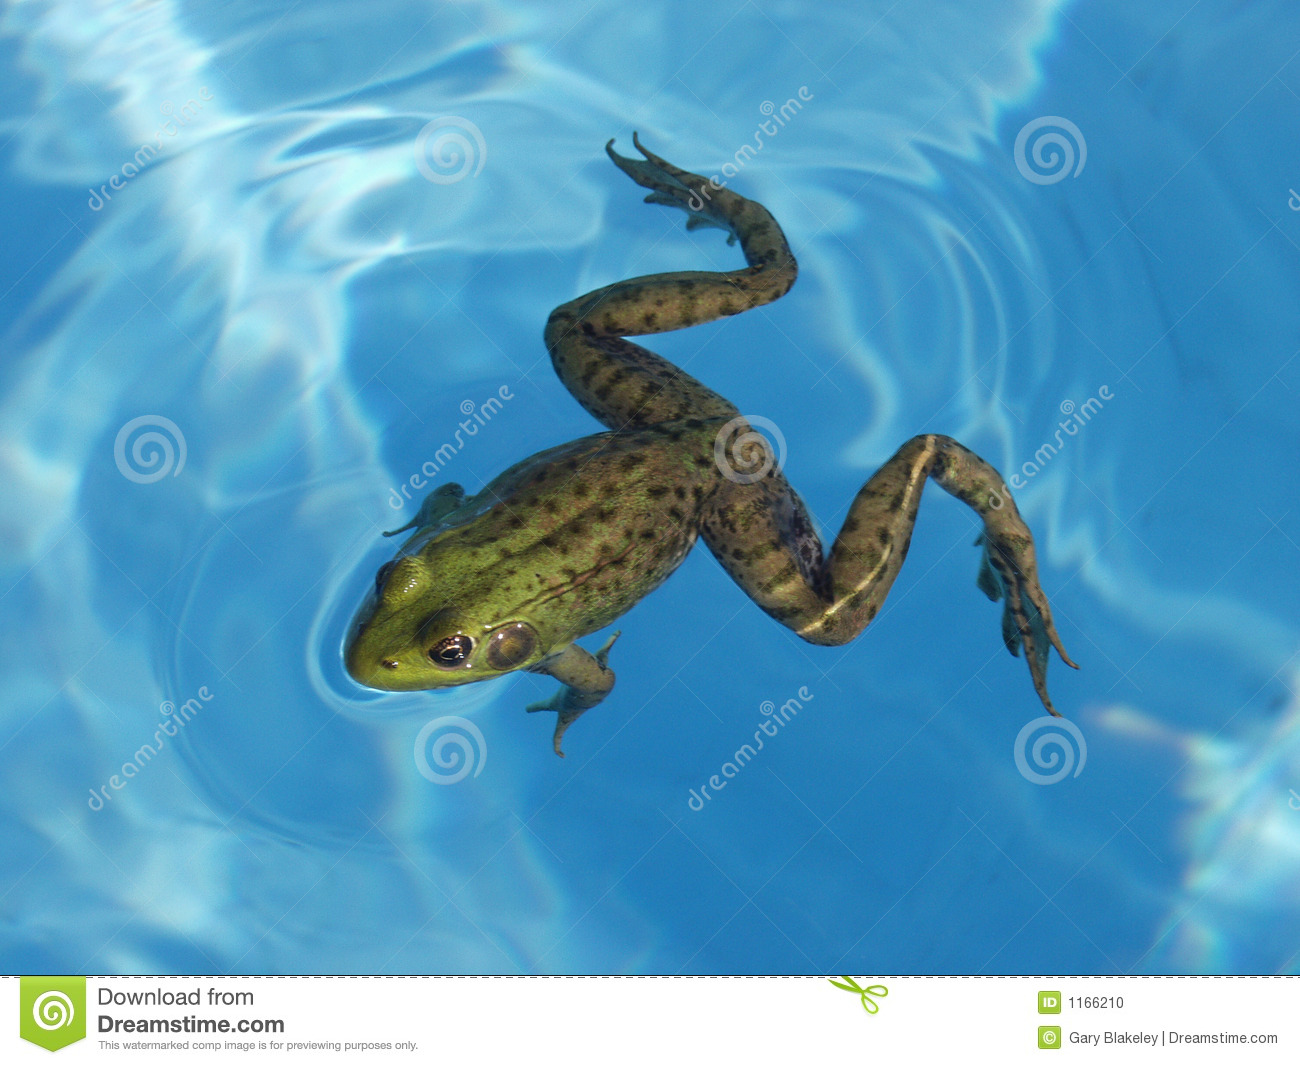 L Clamitans Green Frog In A Pool S...